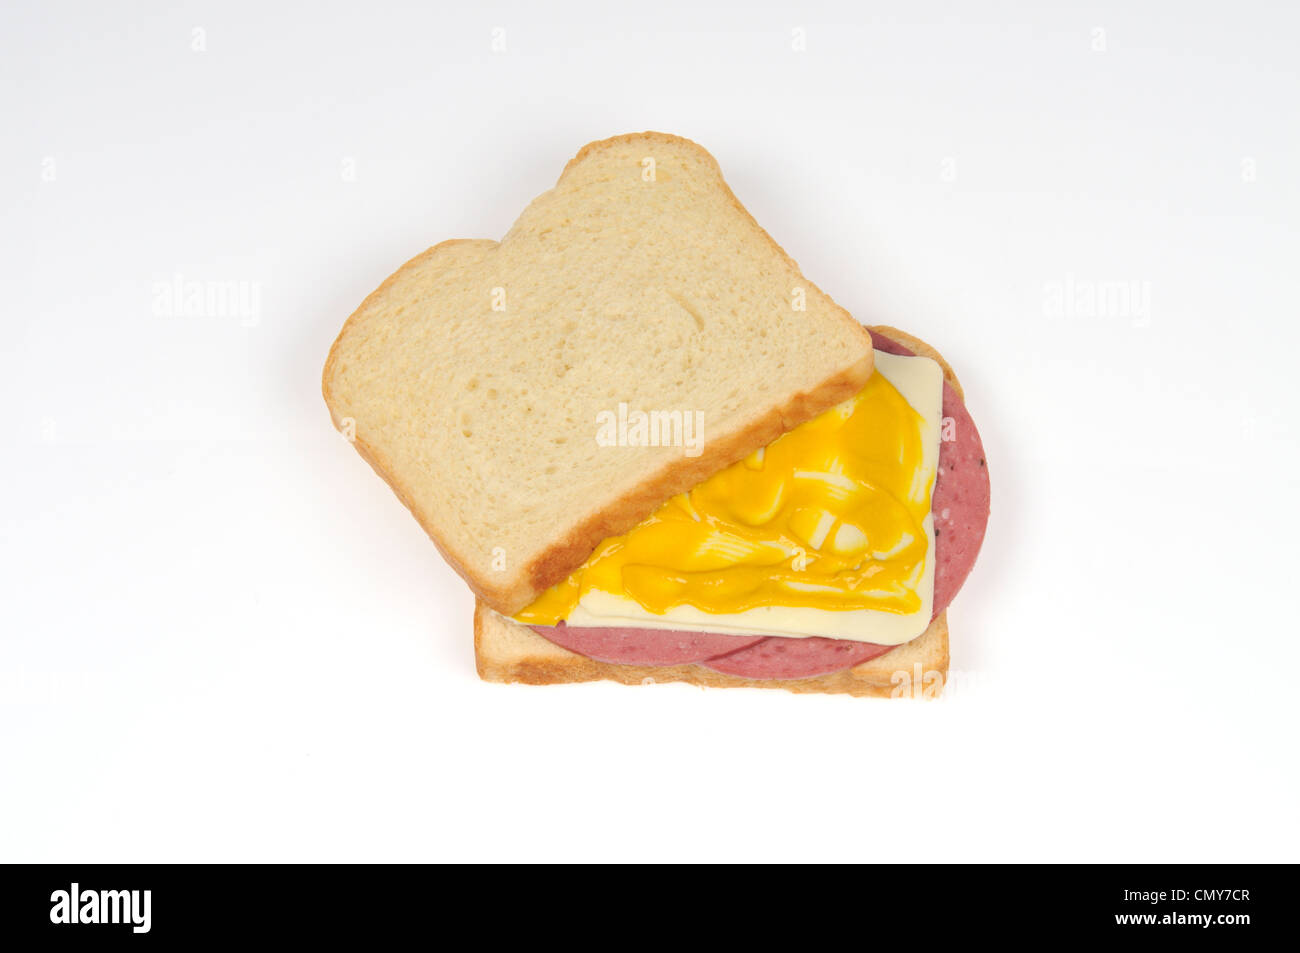 Salami and cheeses sandwich with mustard - Stock Image